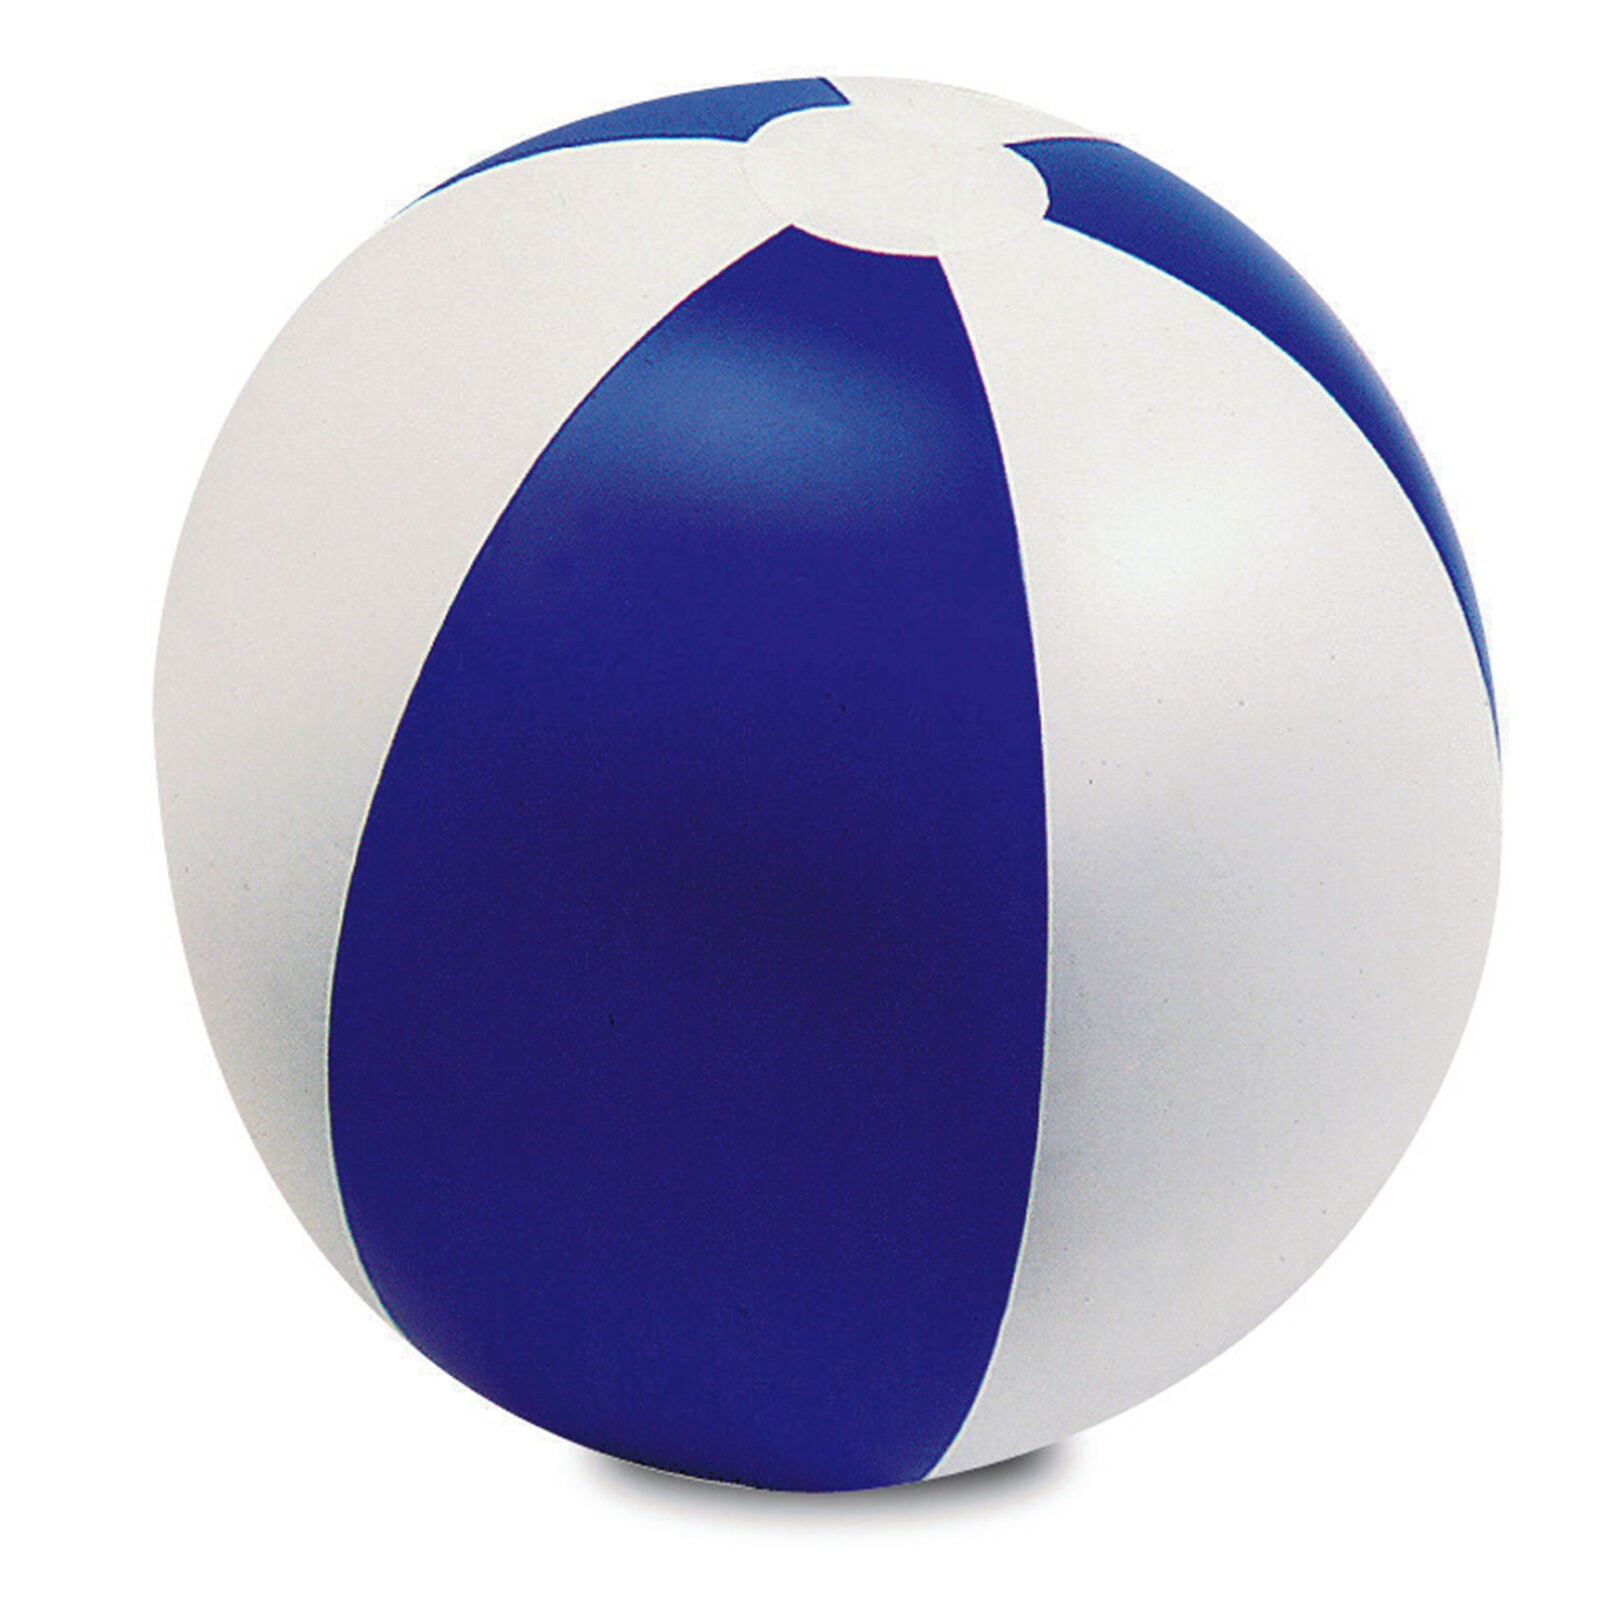 NEW INFLATABLE BEACH BALL BLOW UP GARDEN HOLIDAY SWIMMING FUN GIFT SUMMER